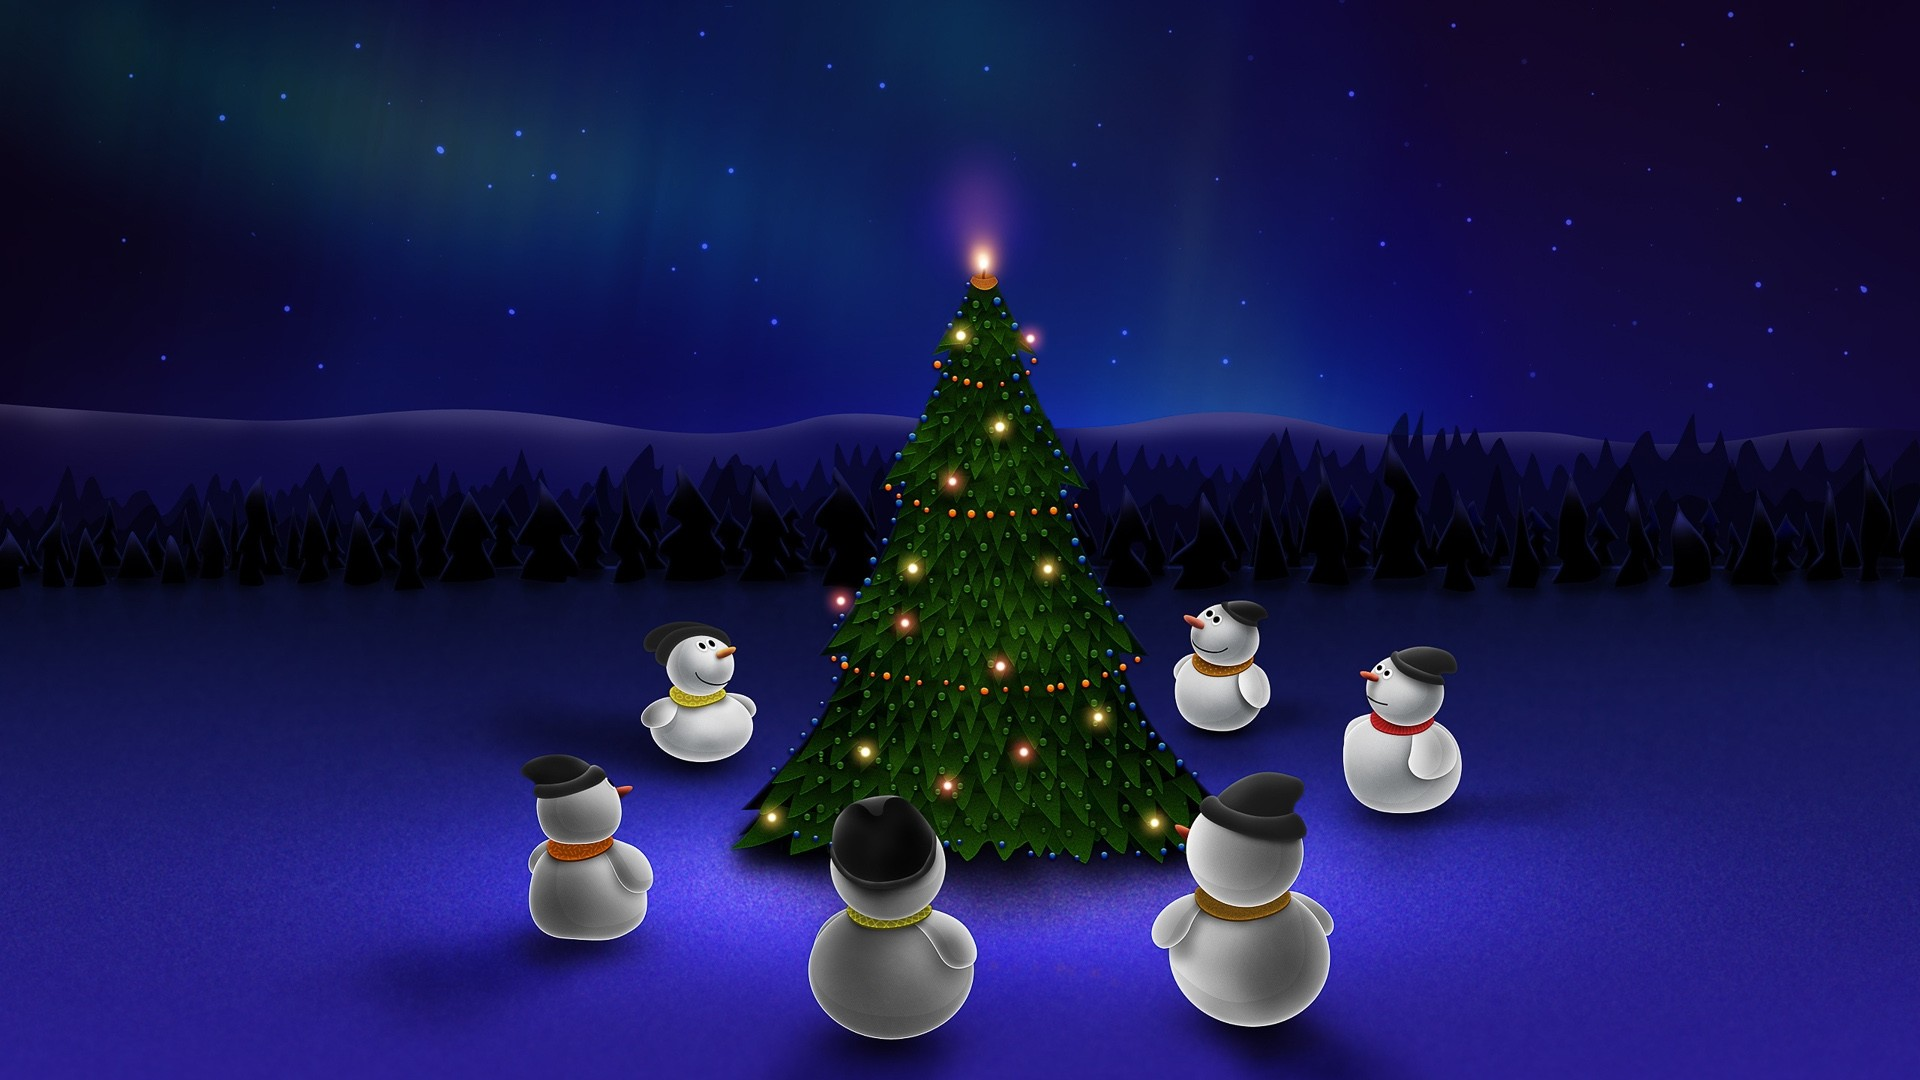 Animated christmas wallpapers for desktop 56 images - Free christmas images for desktop wallpaper ...